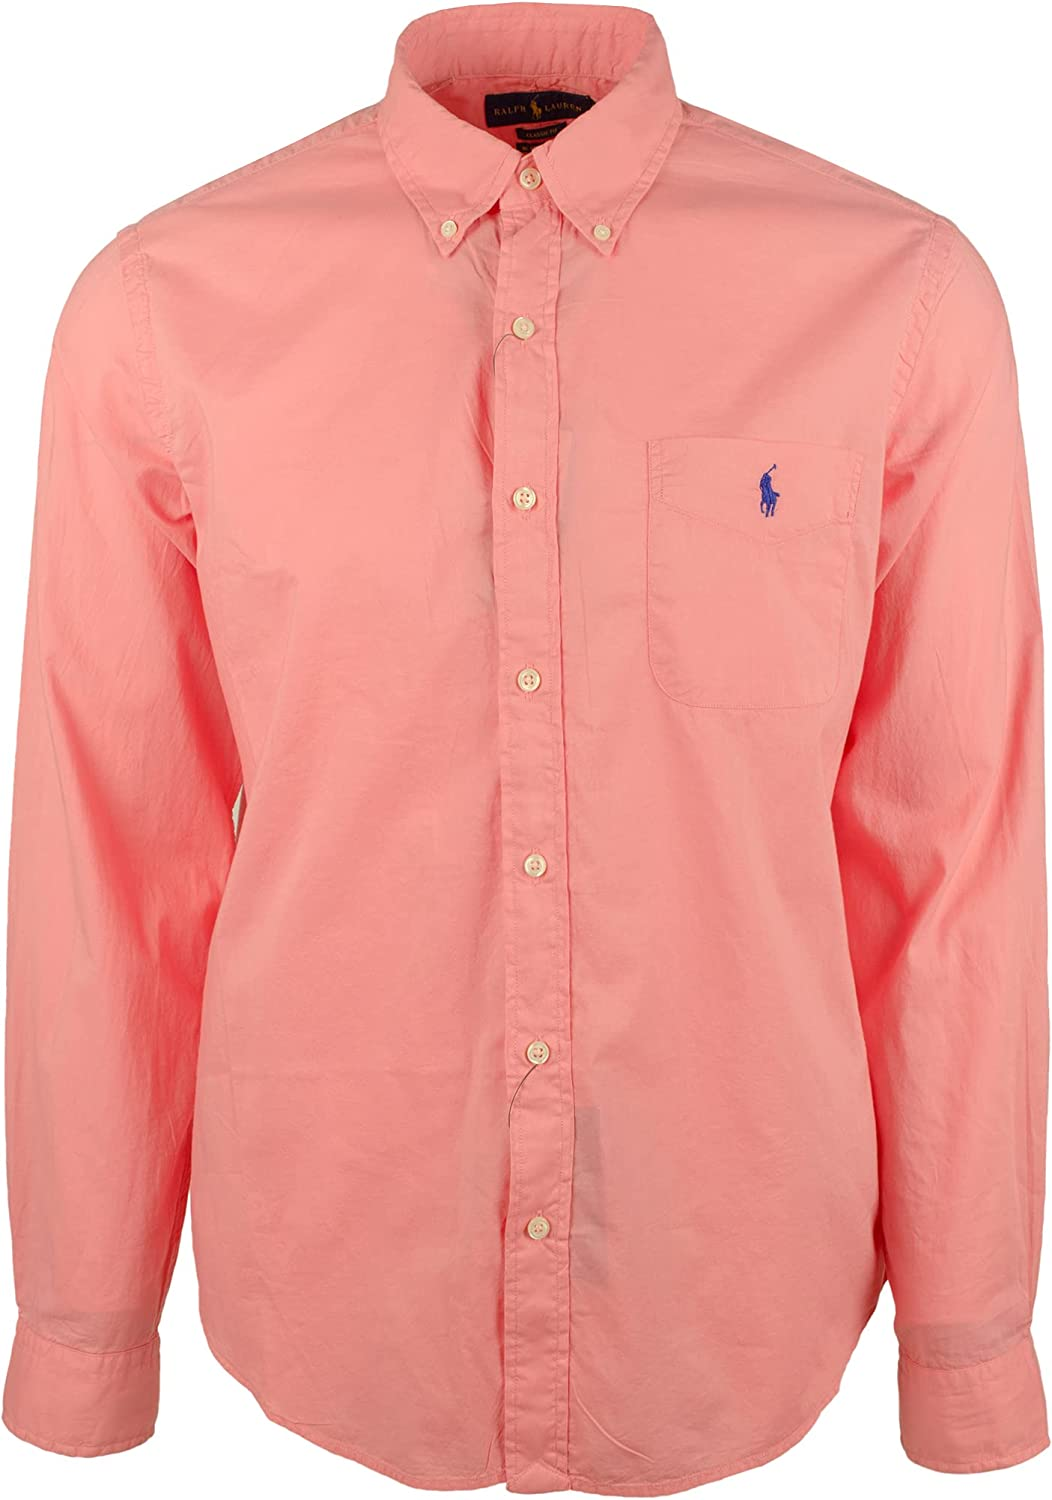 Men's Classic Untucked Fit Long Sleeves Shirt